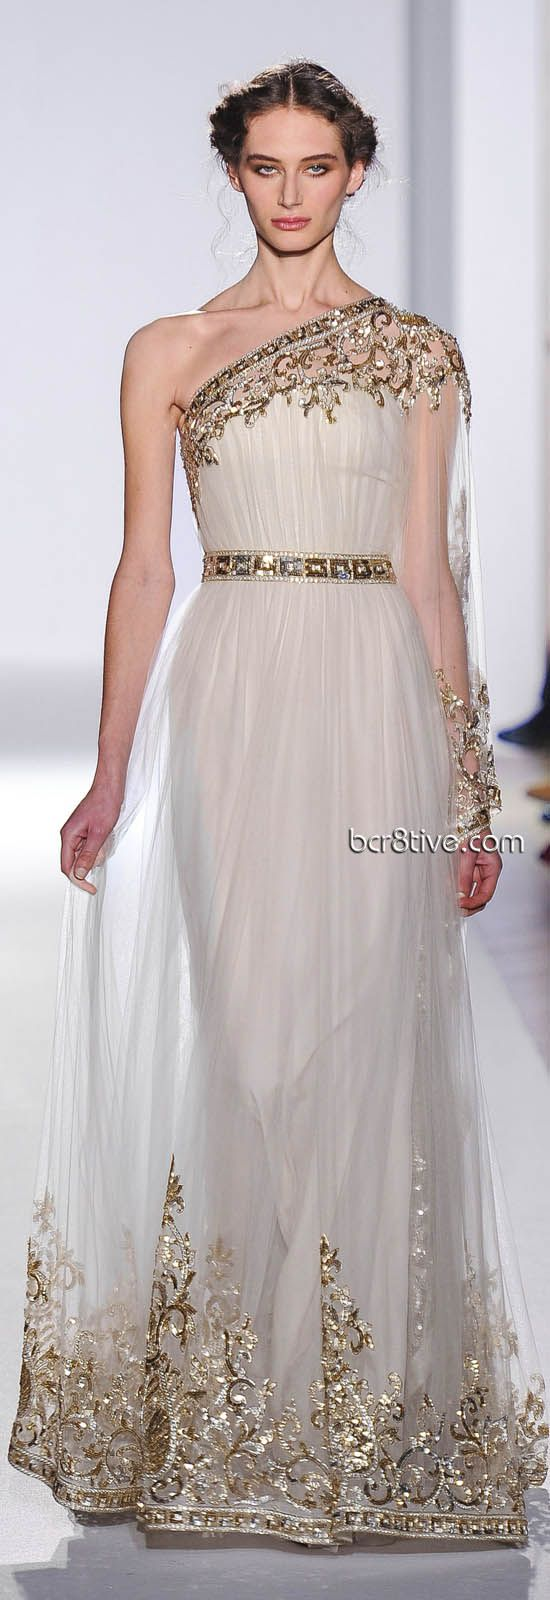 Zuhair Murad Spring Summer 2013 Haute Couture - Paris ... I'm actually liking that gold embroidery or whatever it is